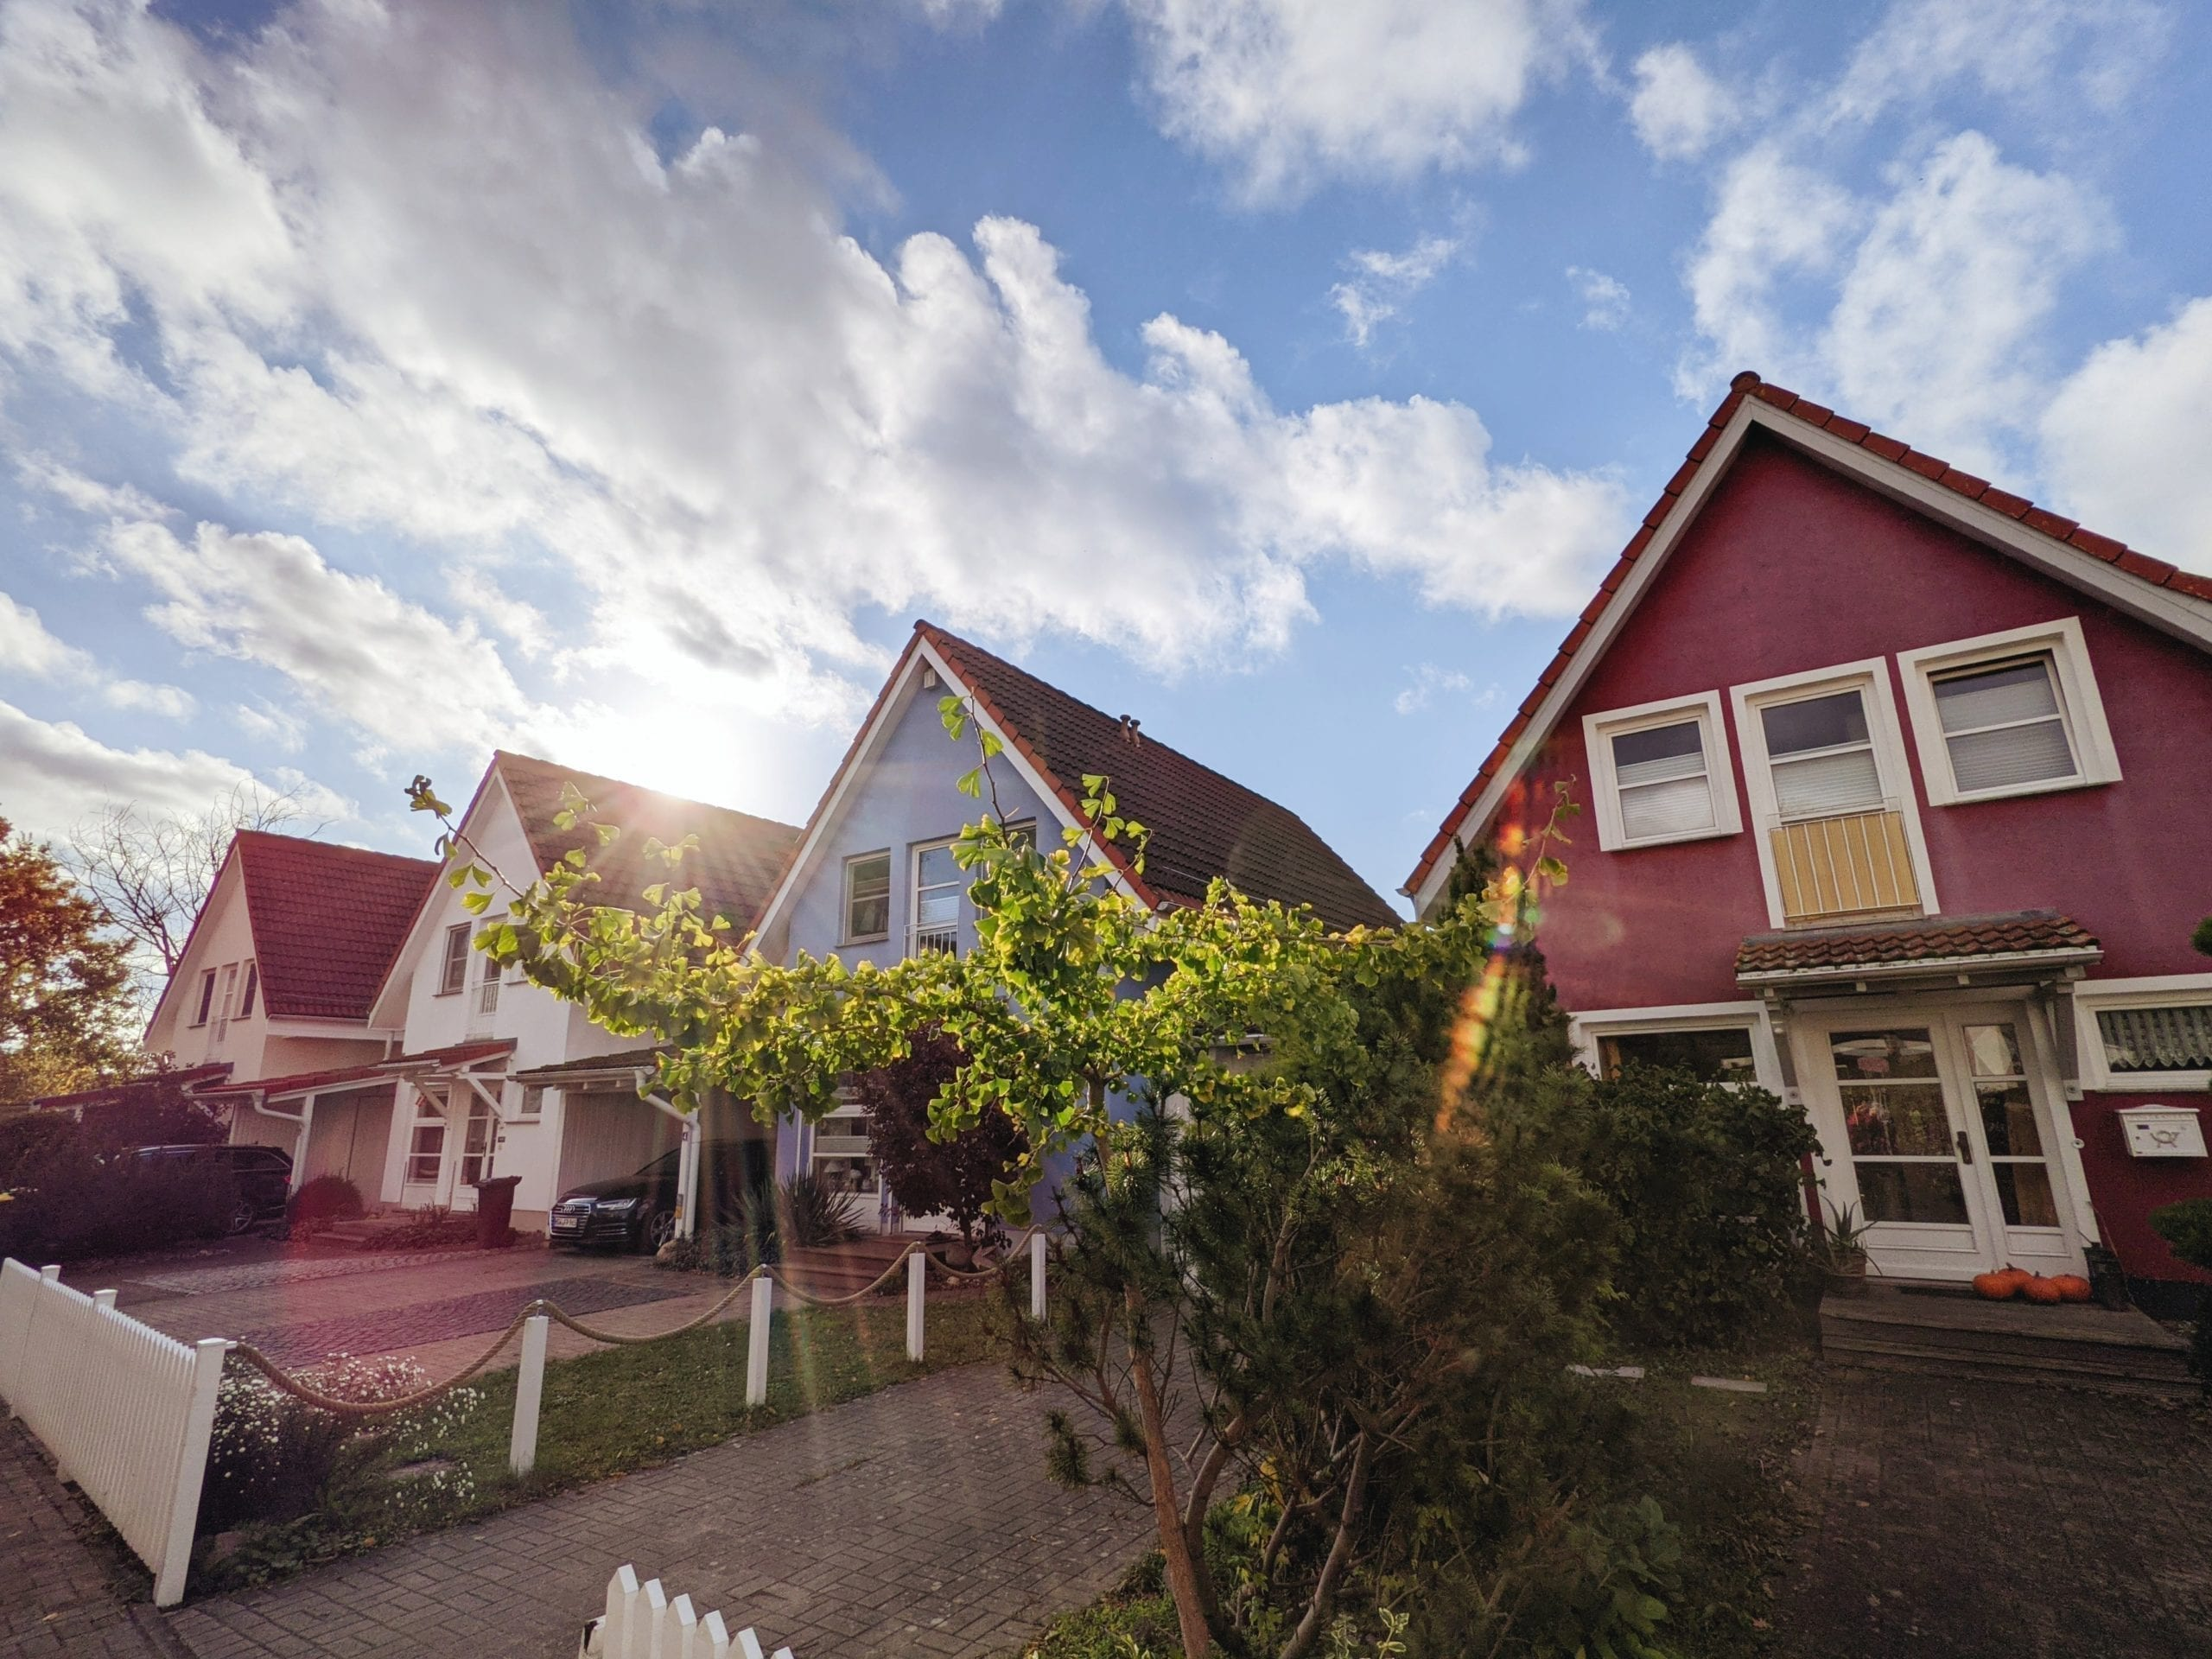 A-frame style houses in a row with sunshine peeking from behind one roof; highlighting mortgage renewals